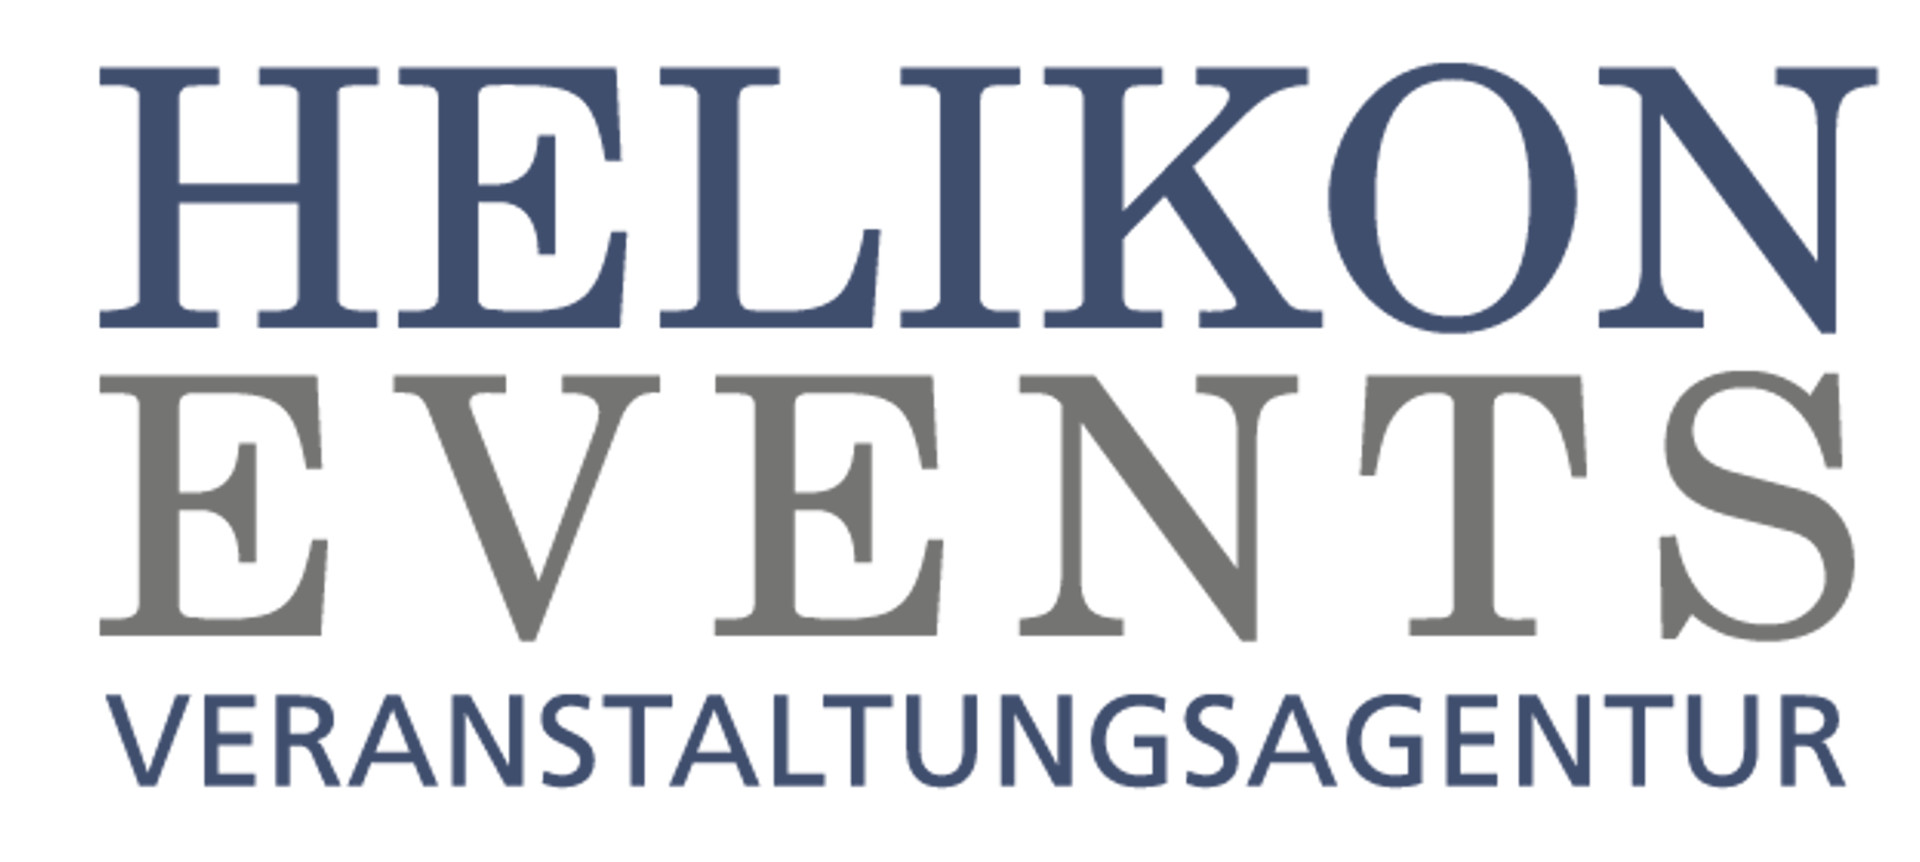 Helikon-Events